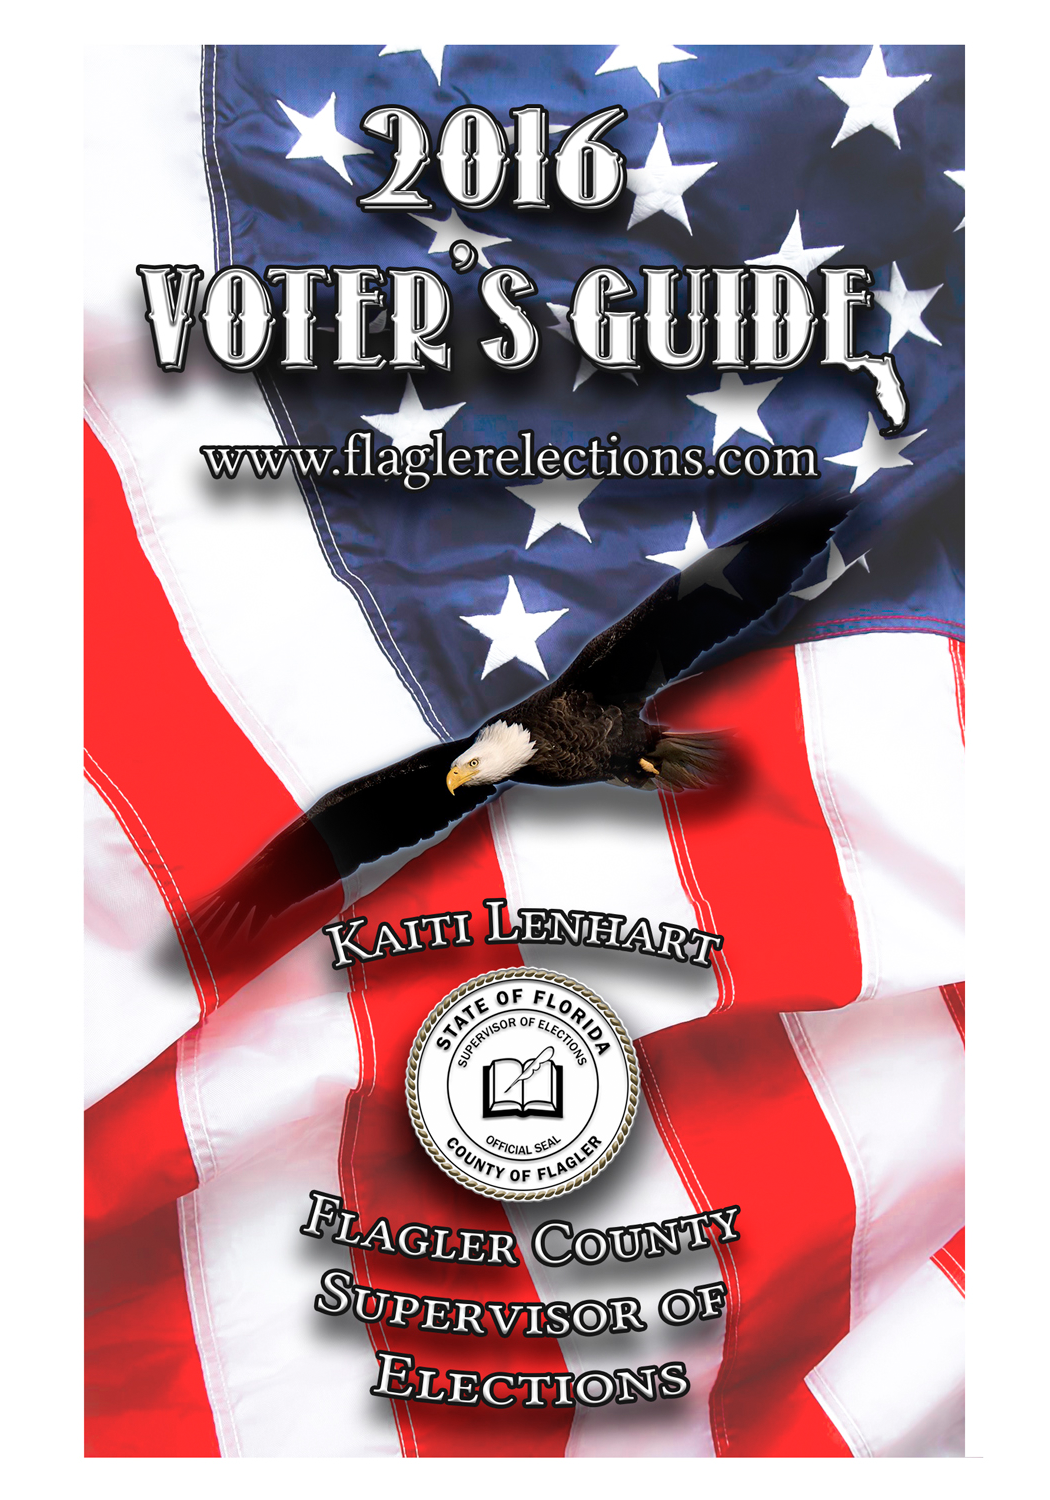 2016 Voter's Guide